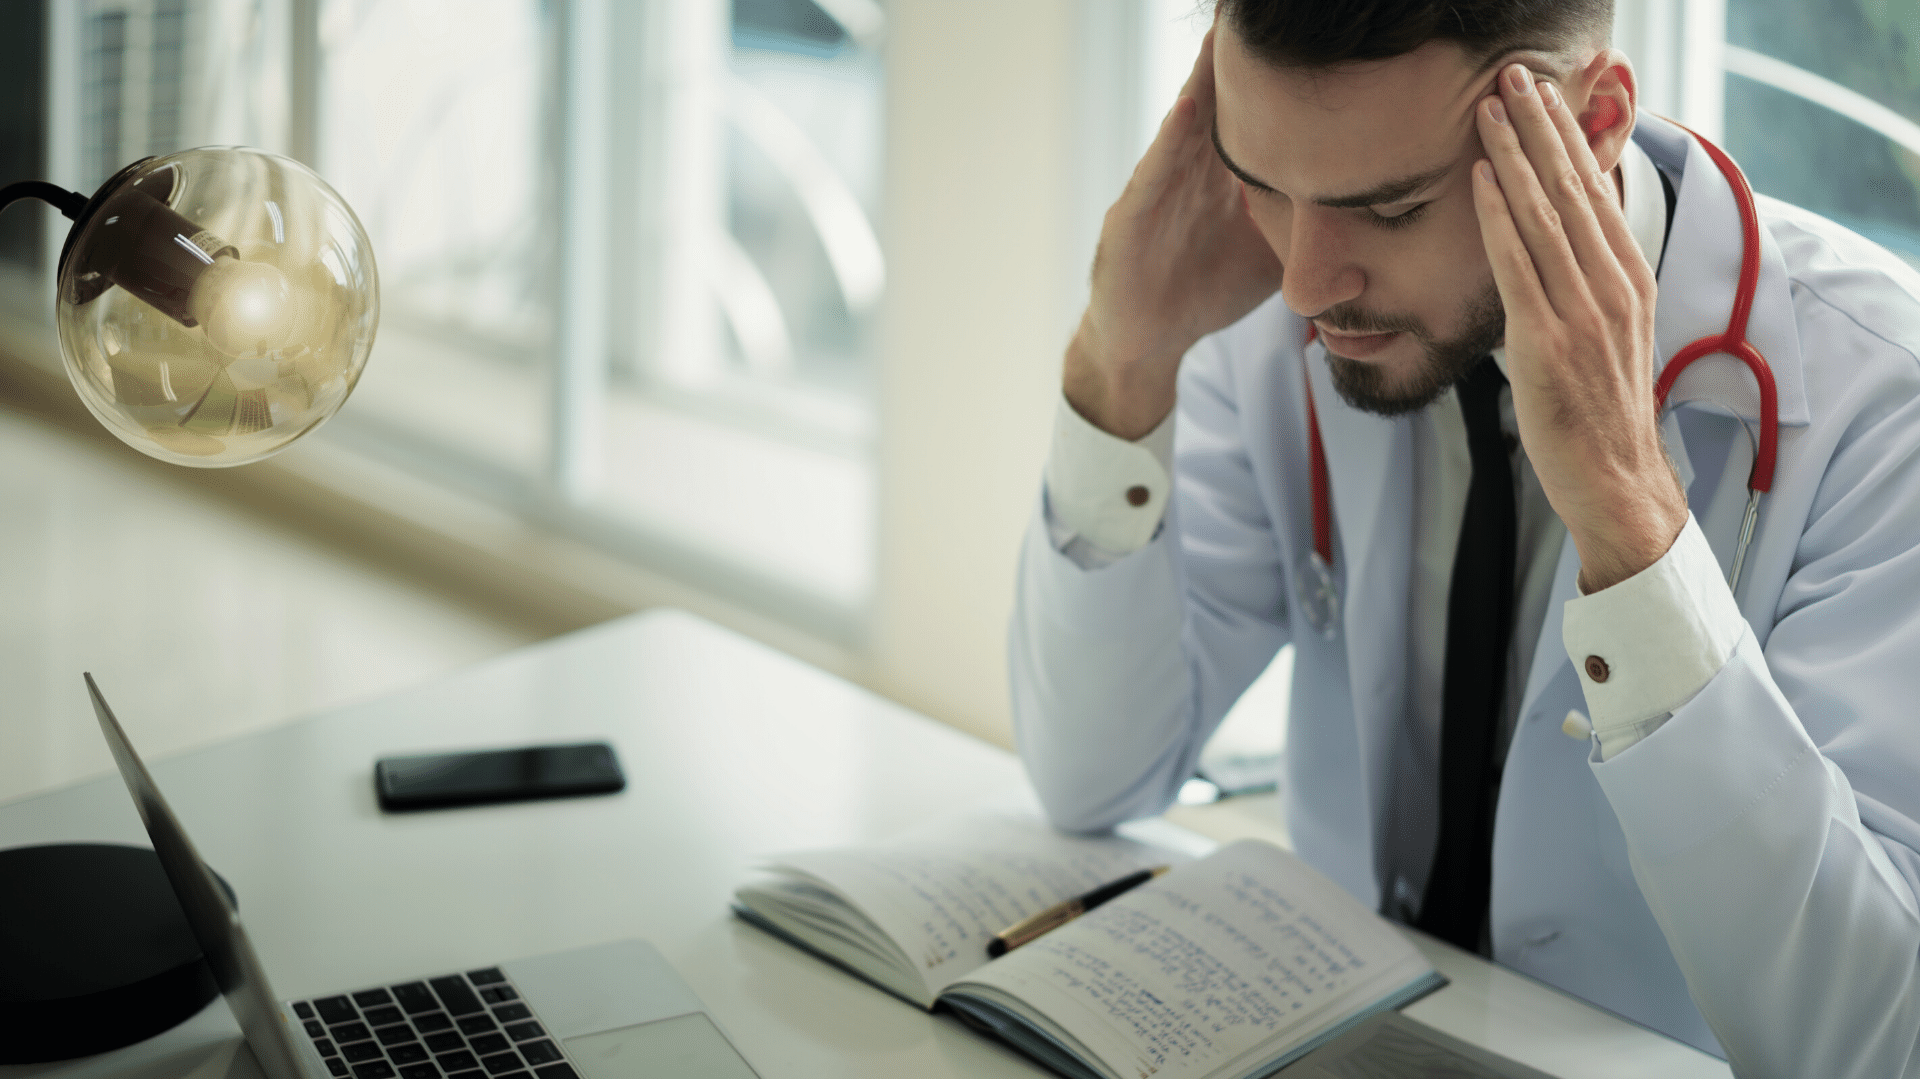 EHR dissatisfaction and physician burnout